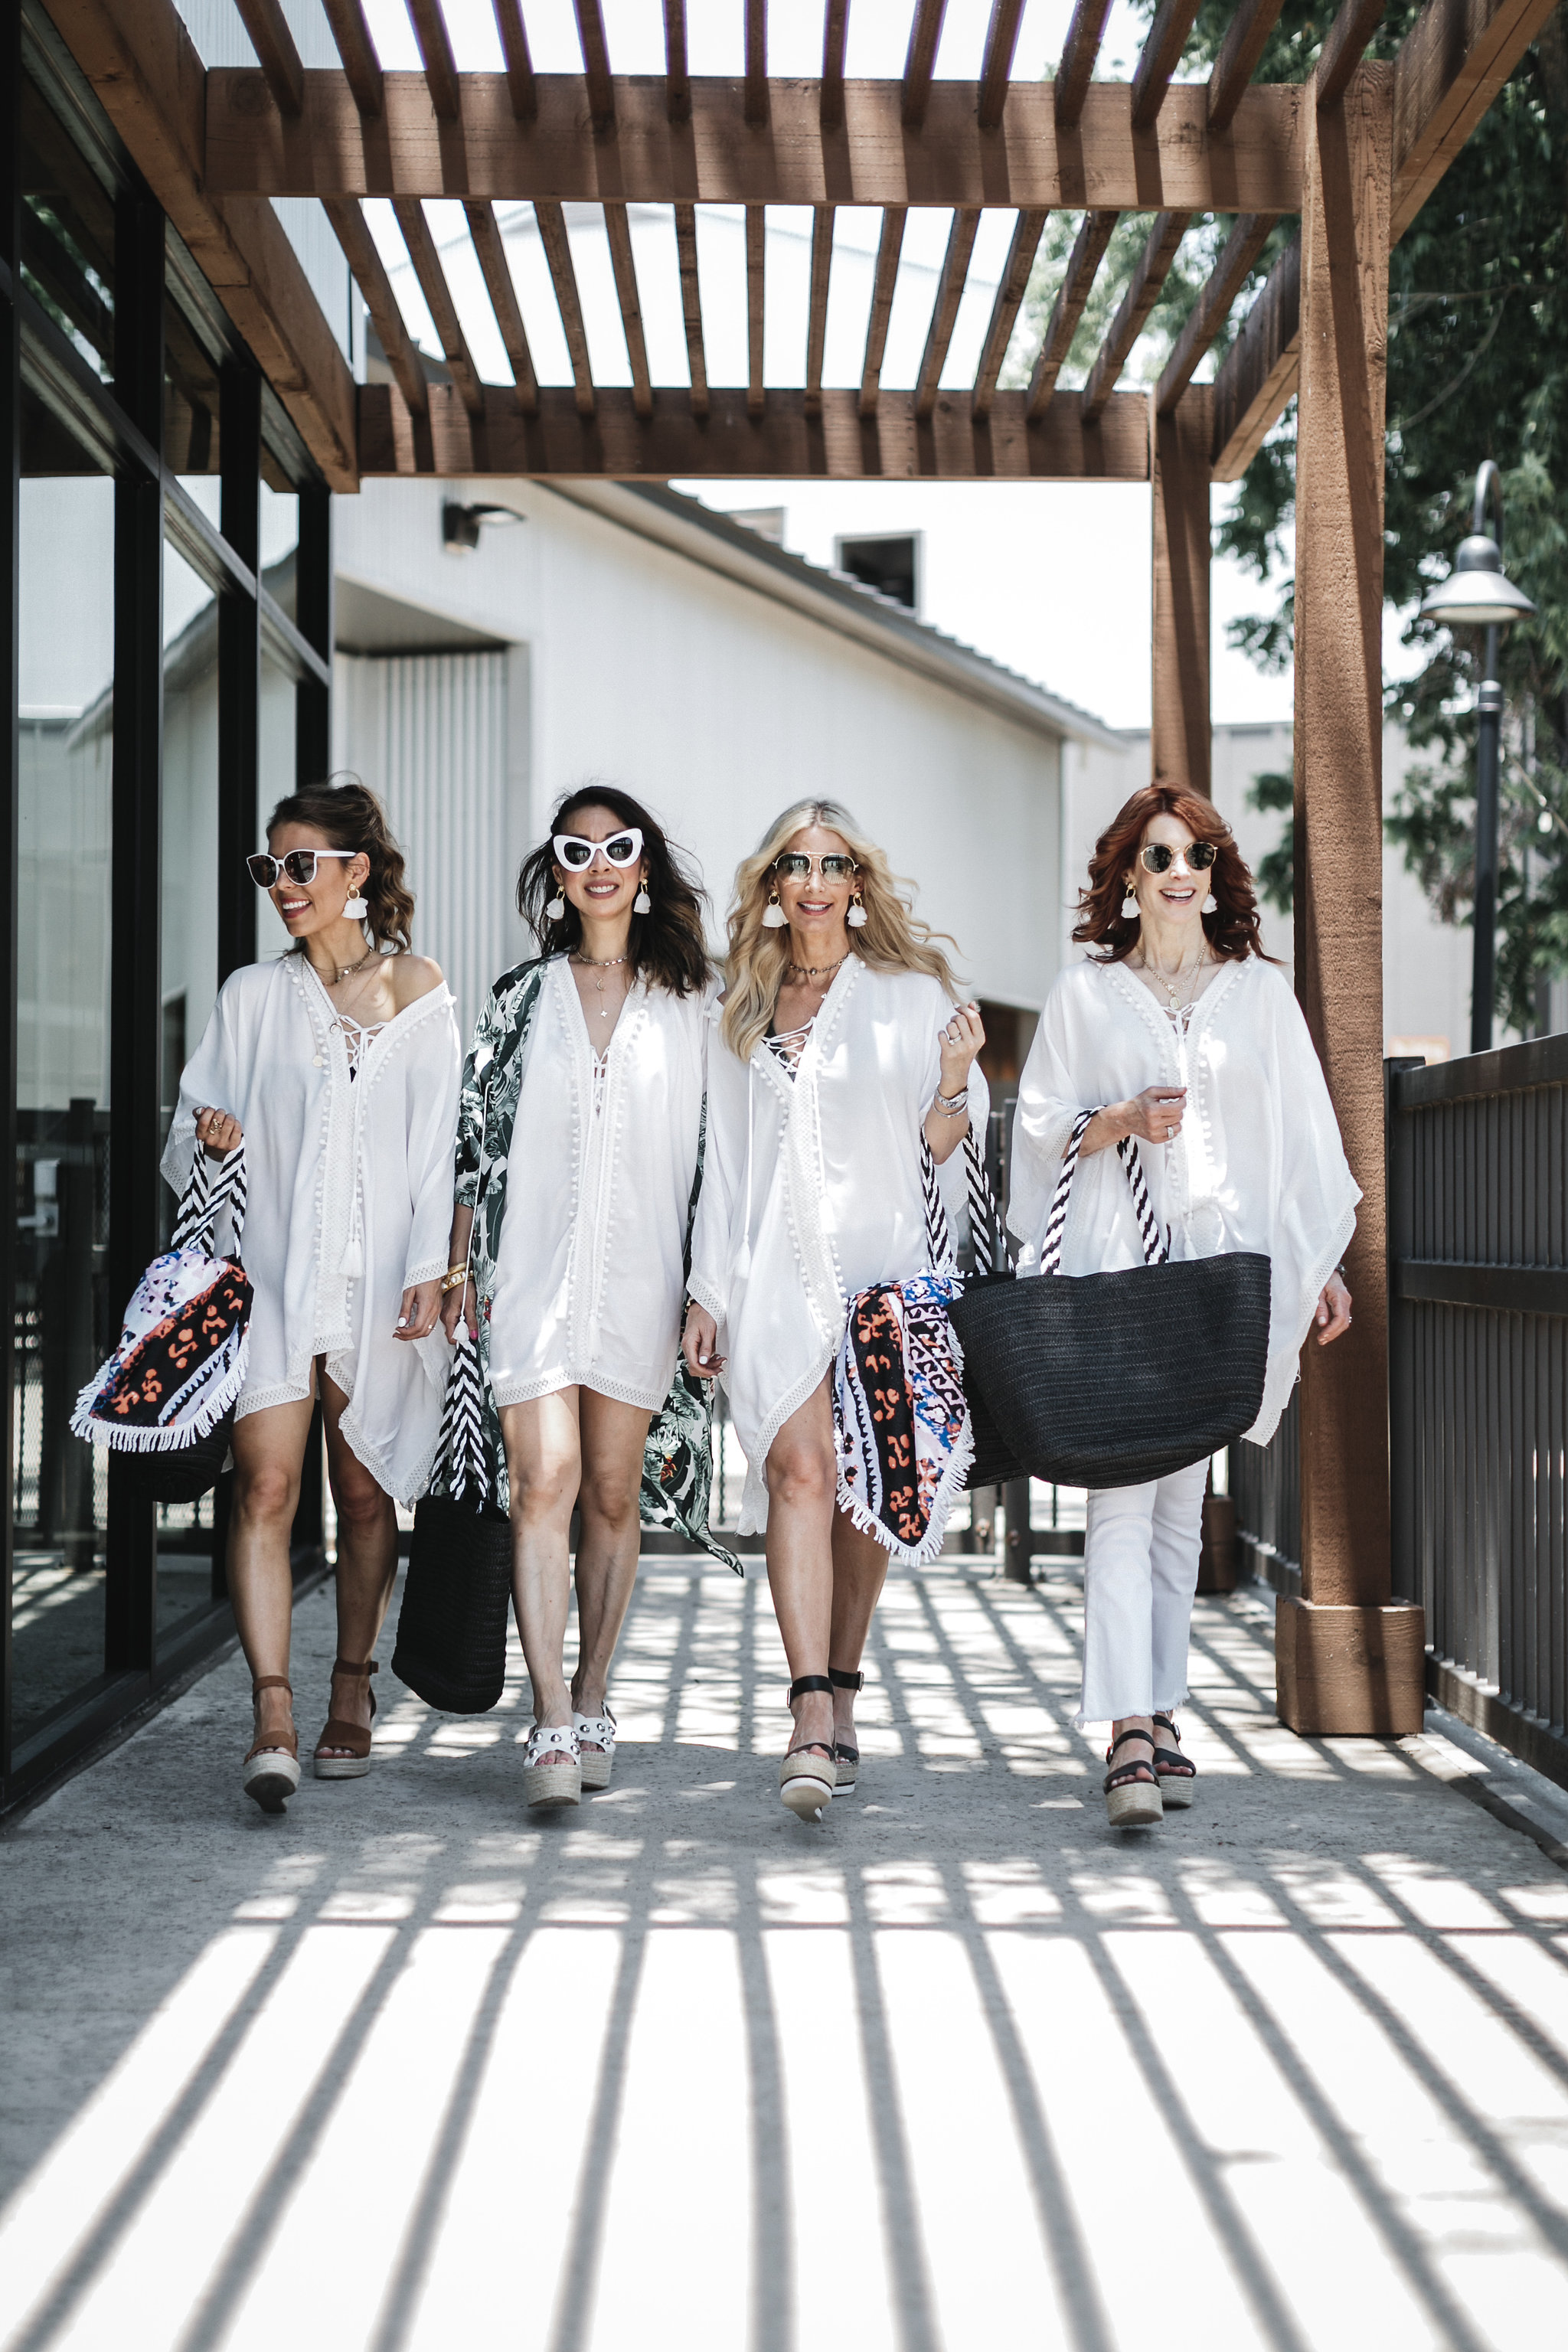 b0ca7bc59b4 CHIC AT EVERY AGE FEATURING RACHEL ZOE S SUMMER BOX OF STYLE